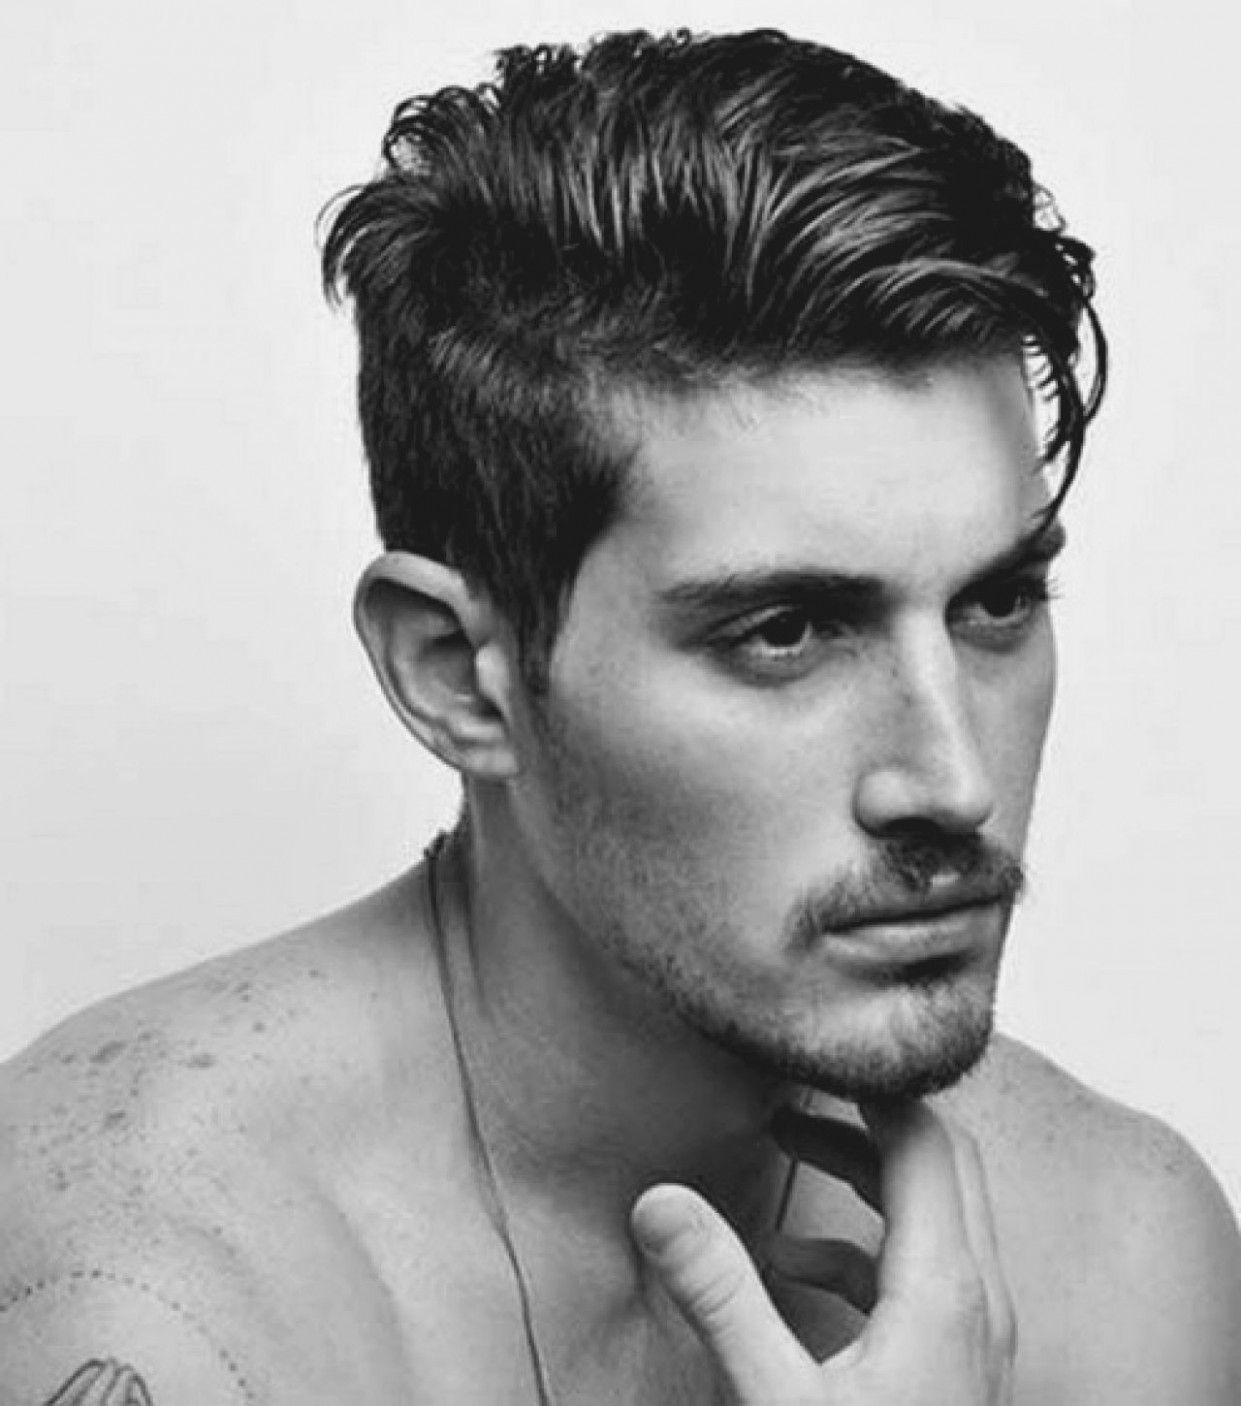 Top 25 Mens Haircuts Near Me Open Now Easy Hairstyles Hairstyle Names Mens Hairstyles Haircuts For Men